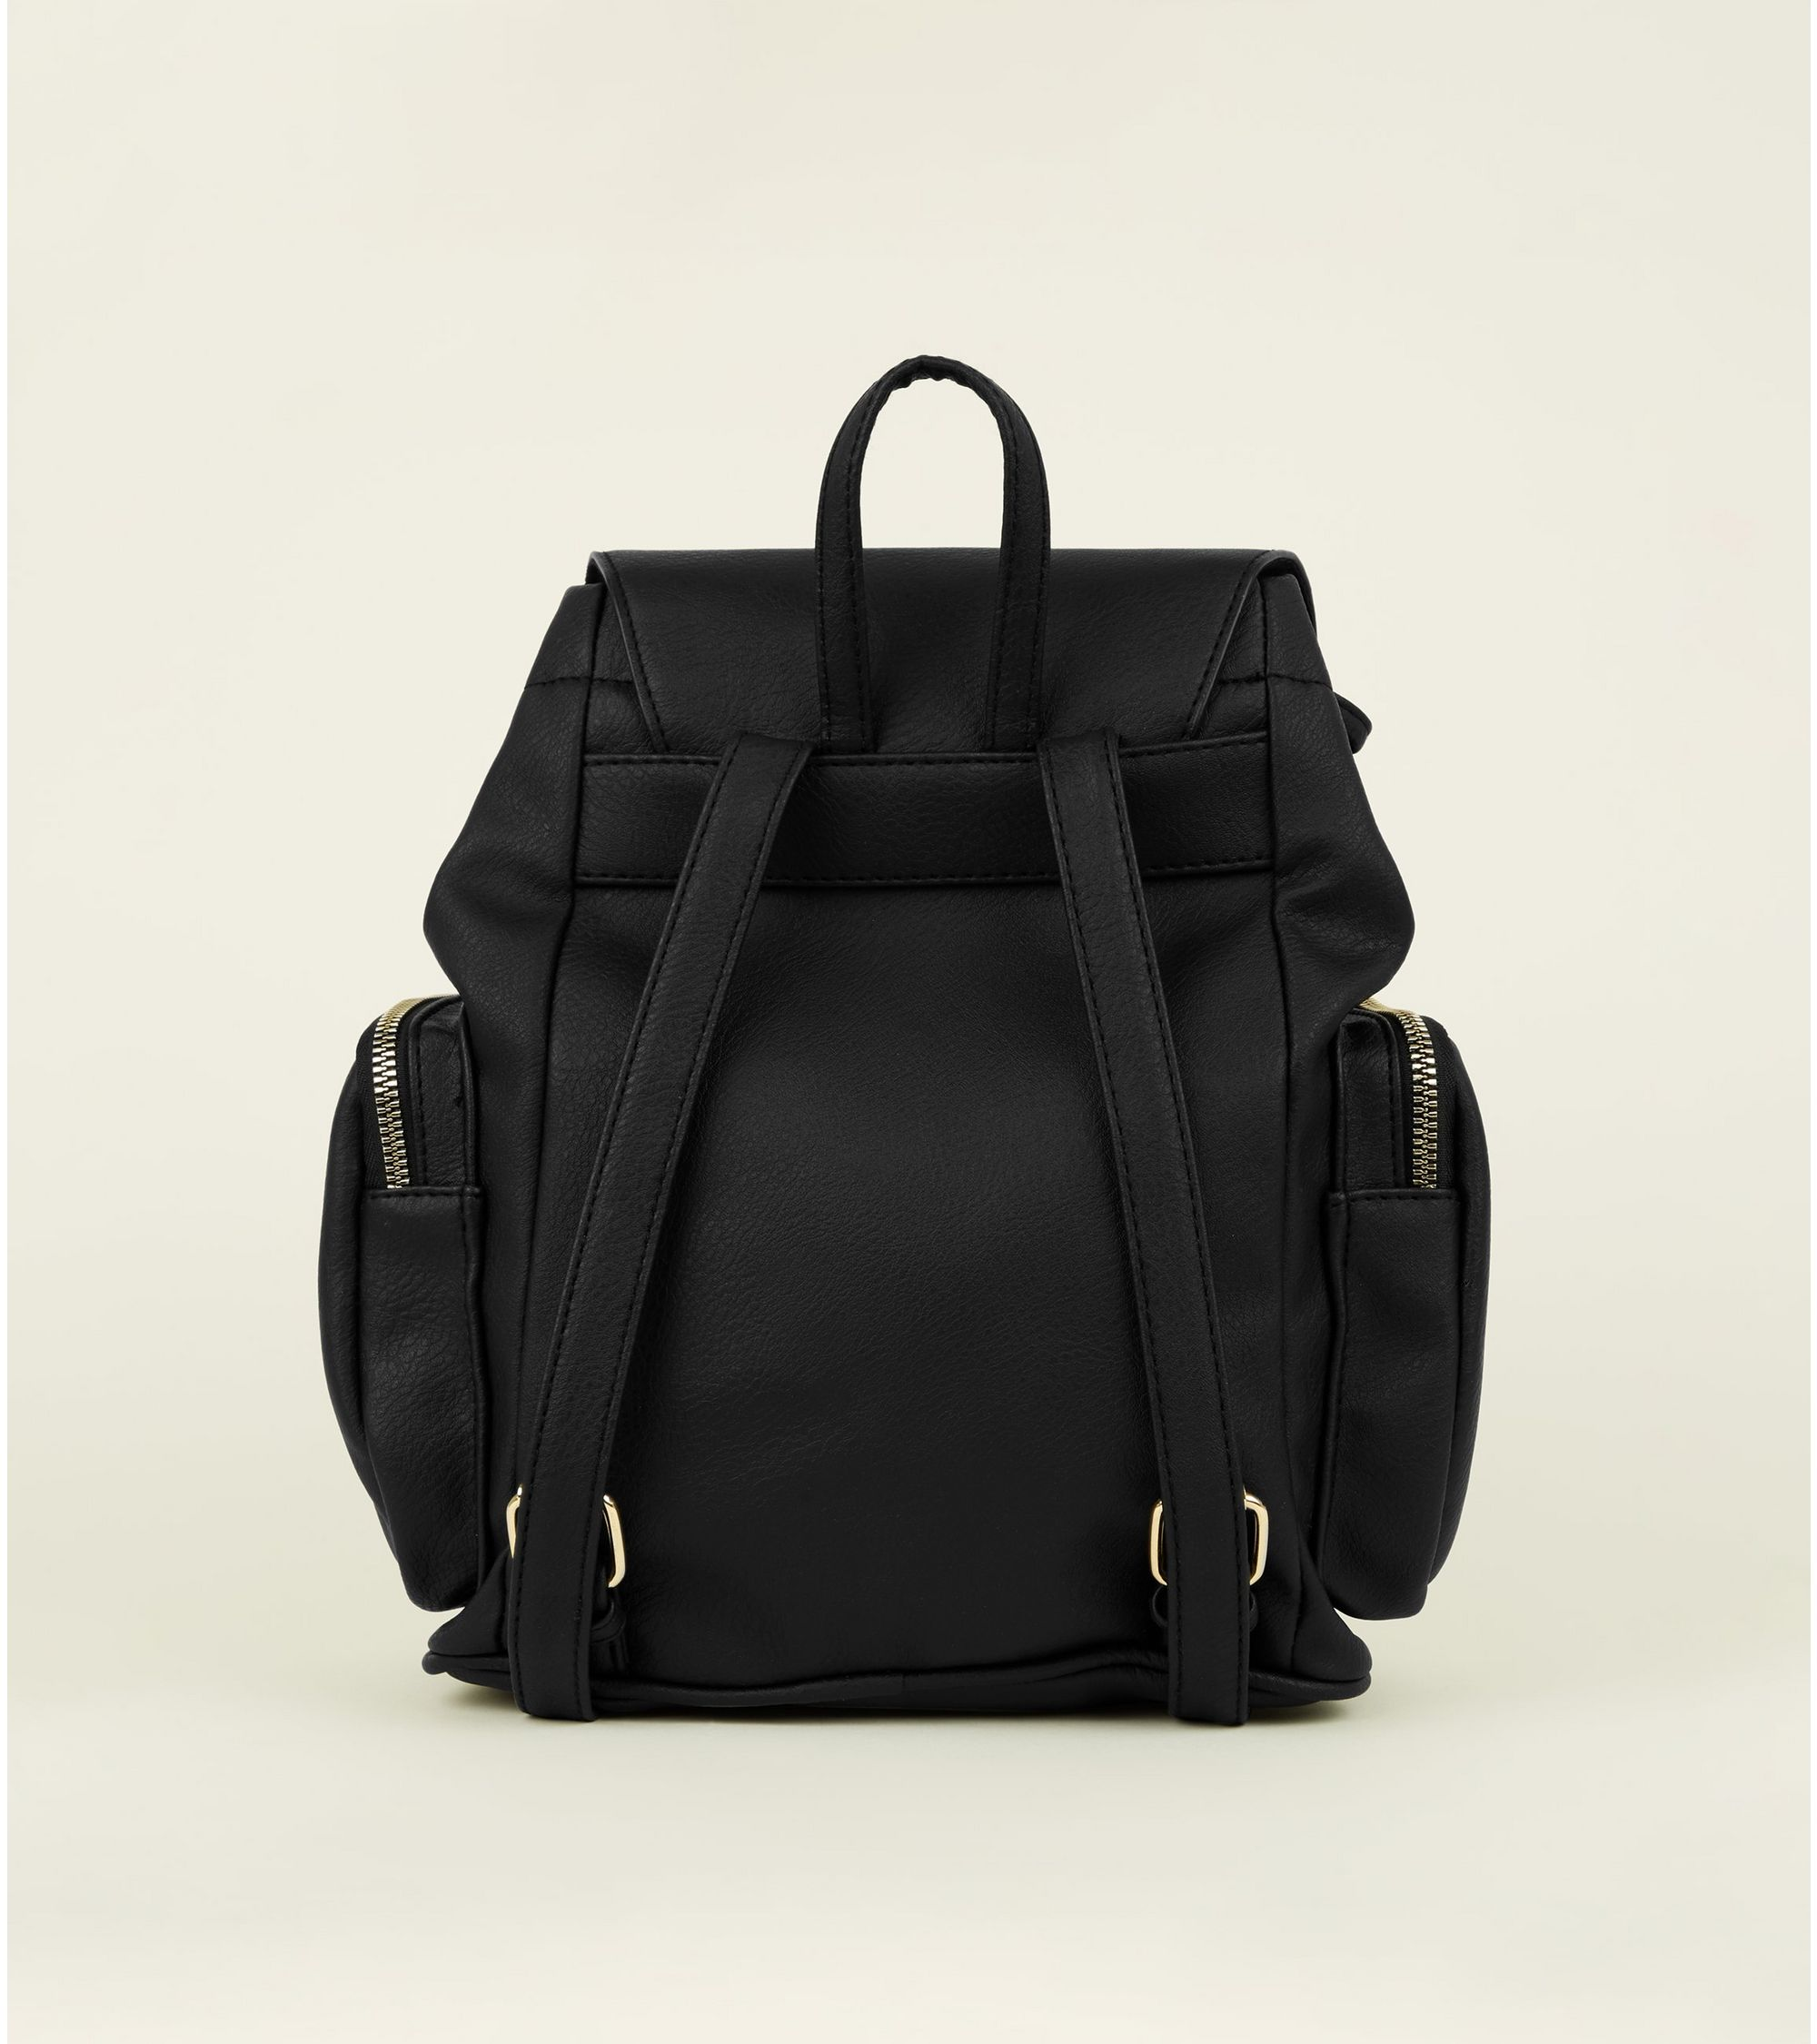 9237a0ba5 New Look Black Leather Look Flap Front Drawstring Backpack at £22.99 ...